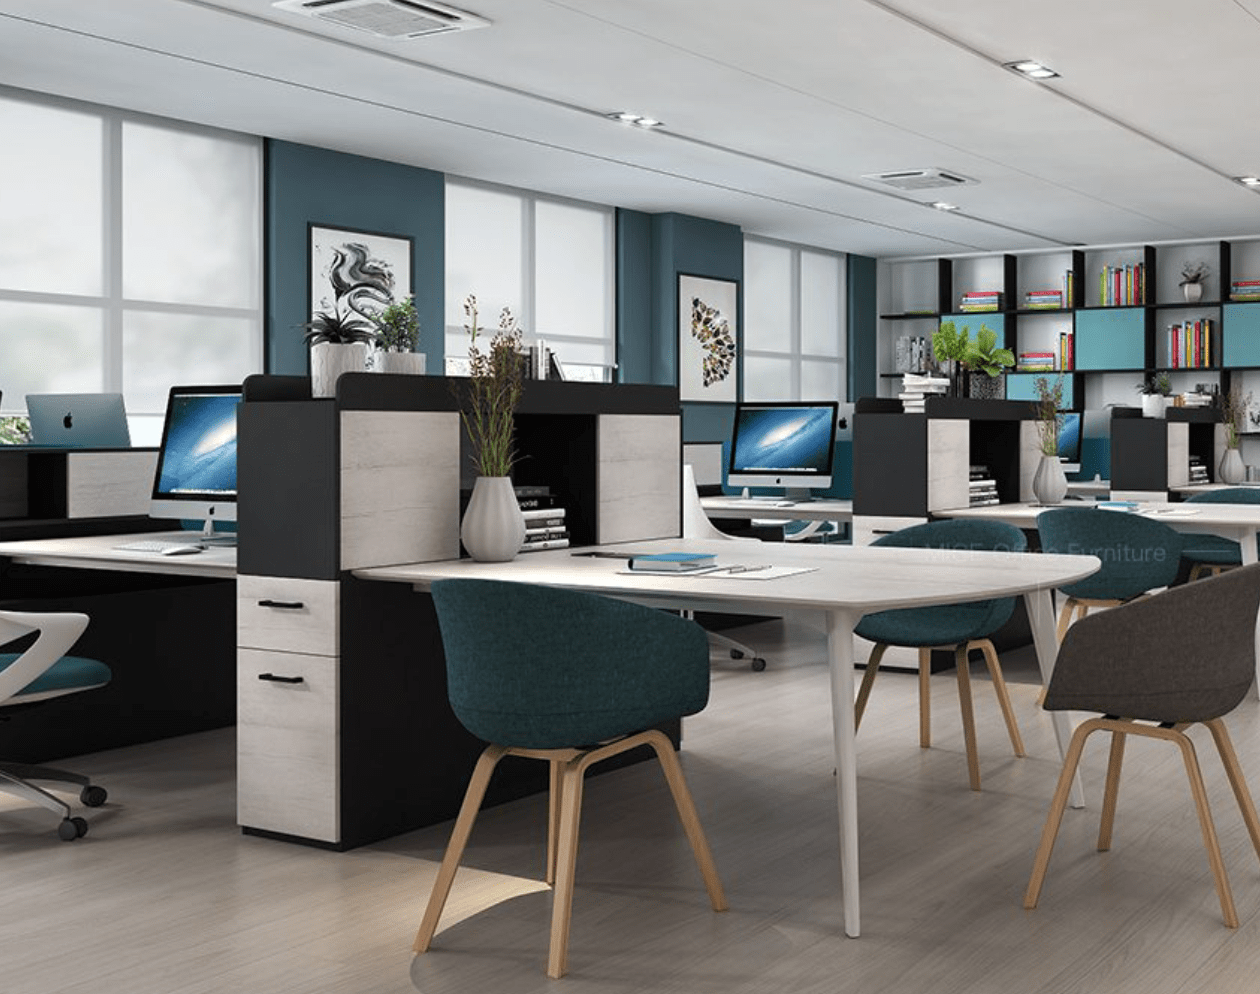 What are the different factors to consider when purchasing office furniture?